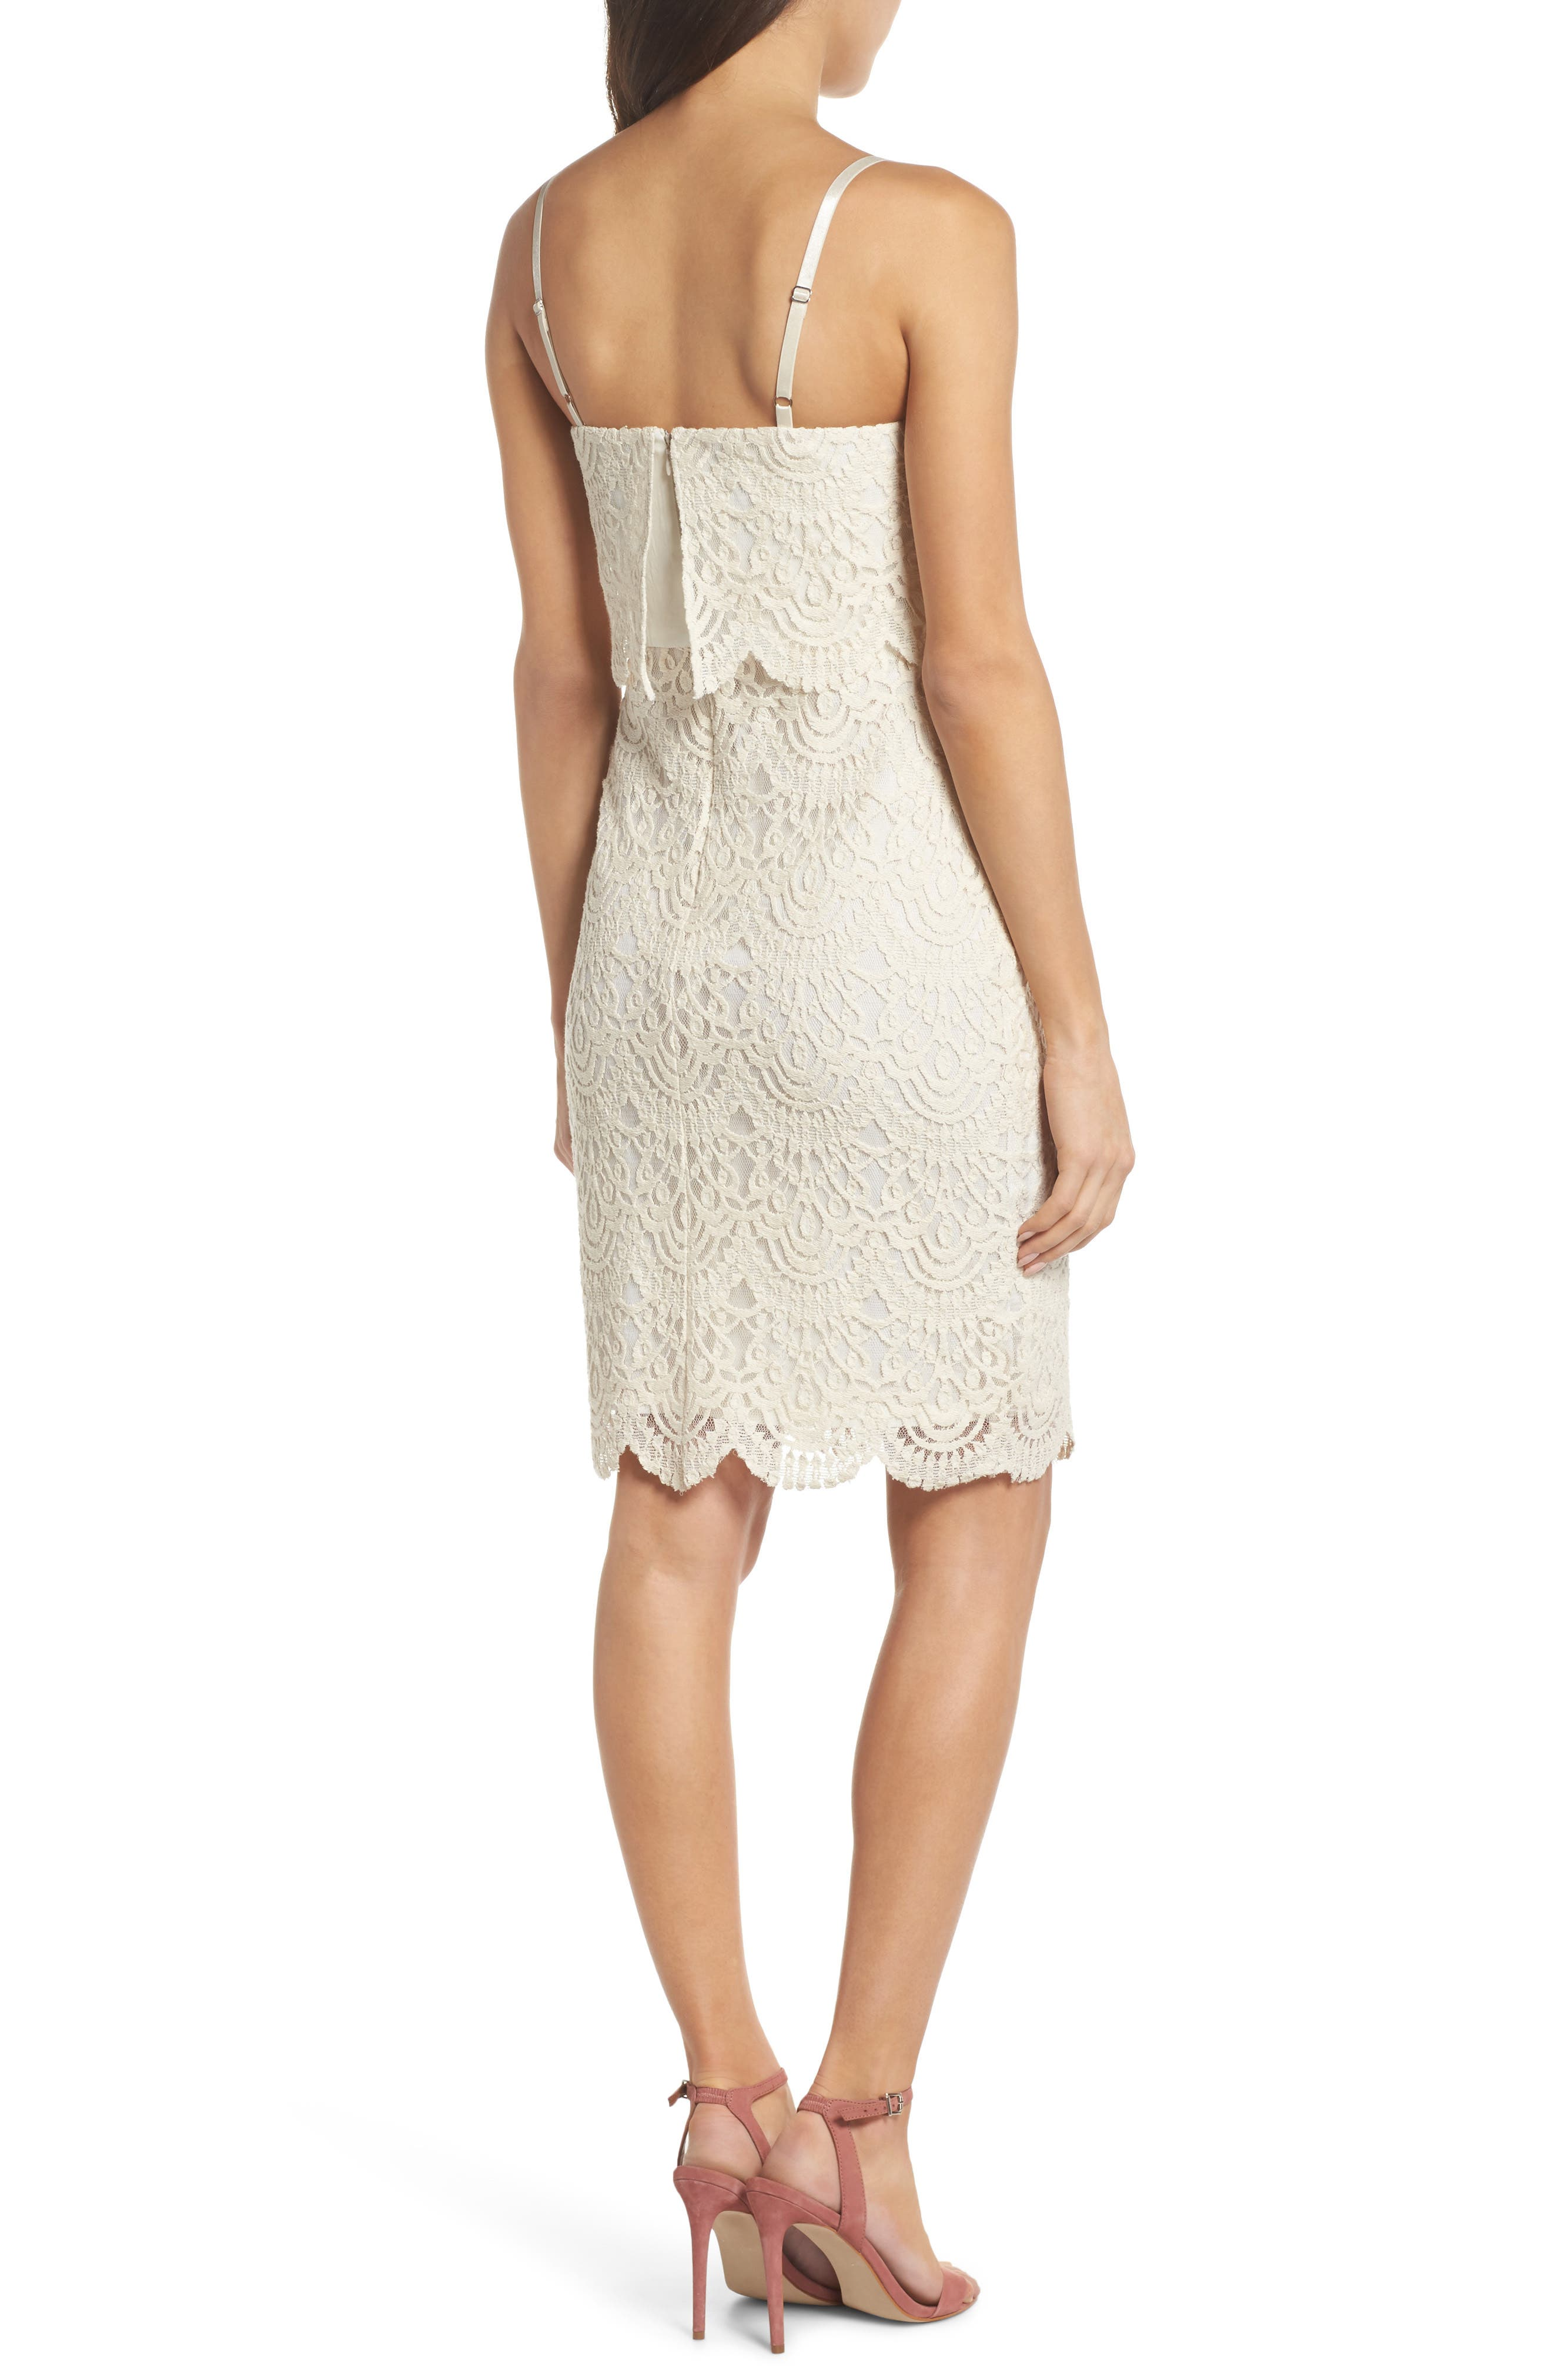 Barnsdall Afternoon Tiered Lace Dress,                             Alternate thumbnail 3, color,                             Vintage Lace